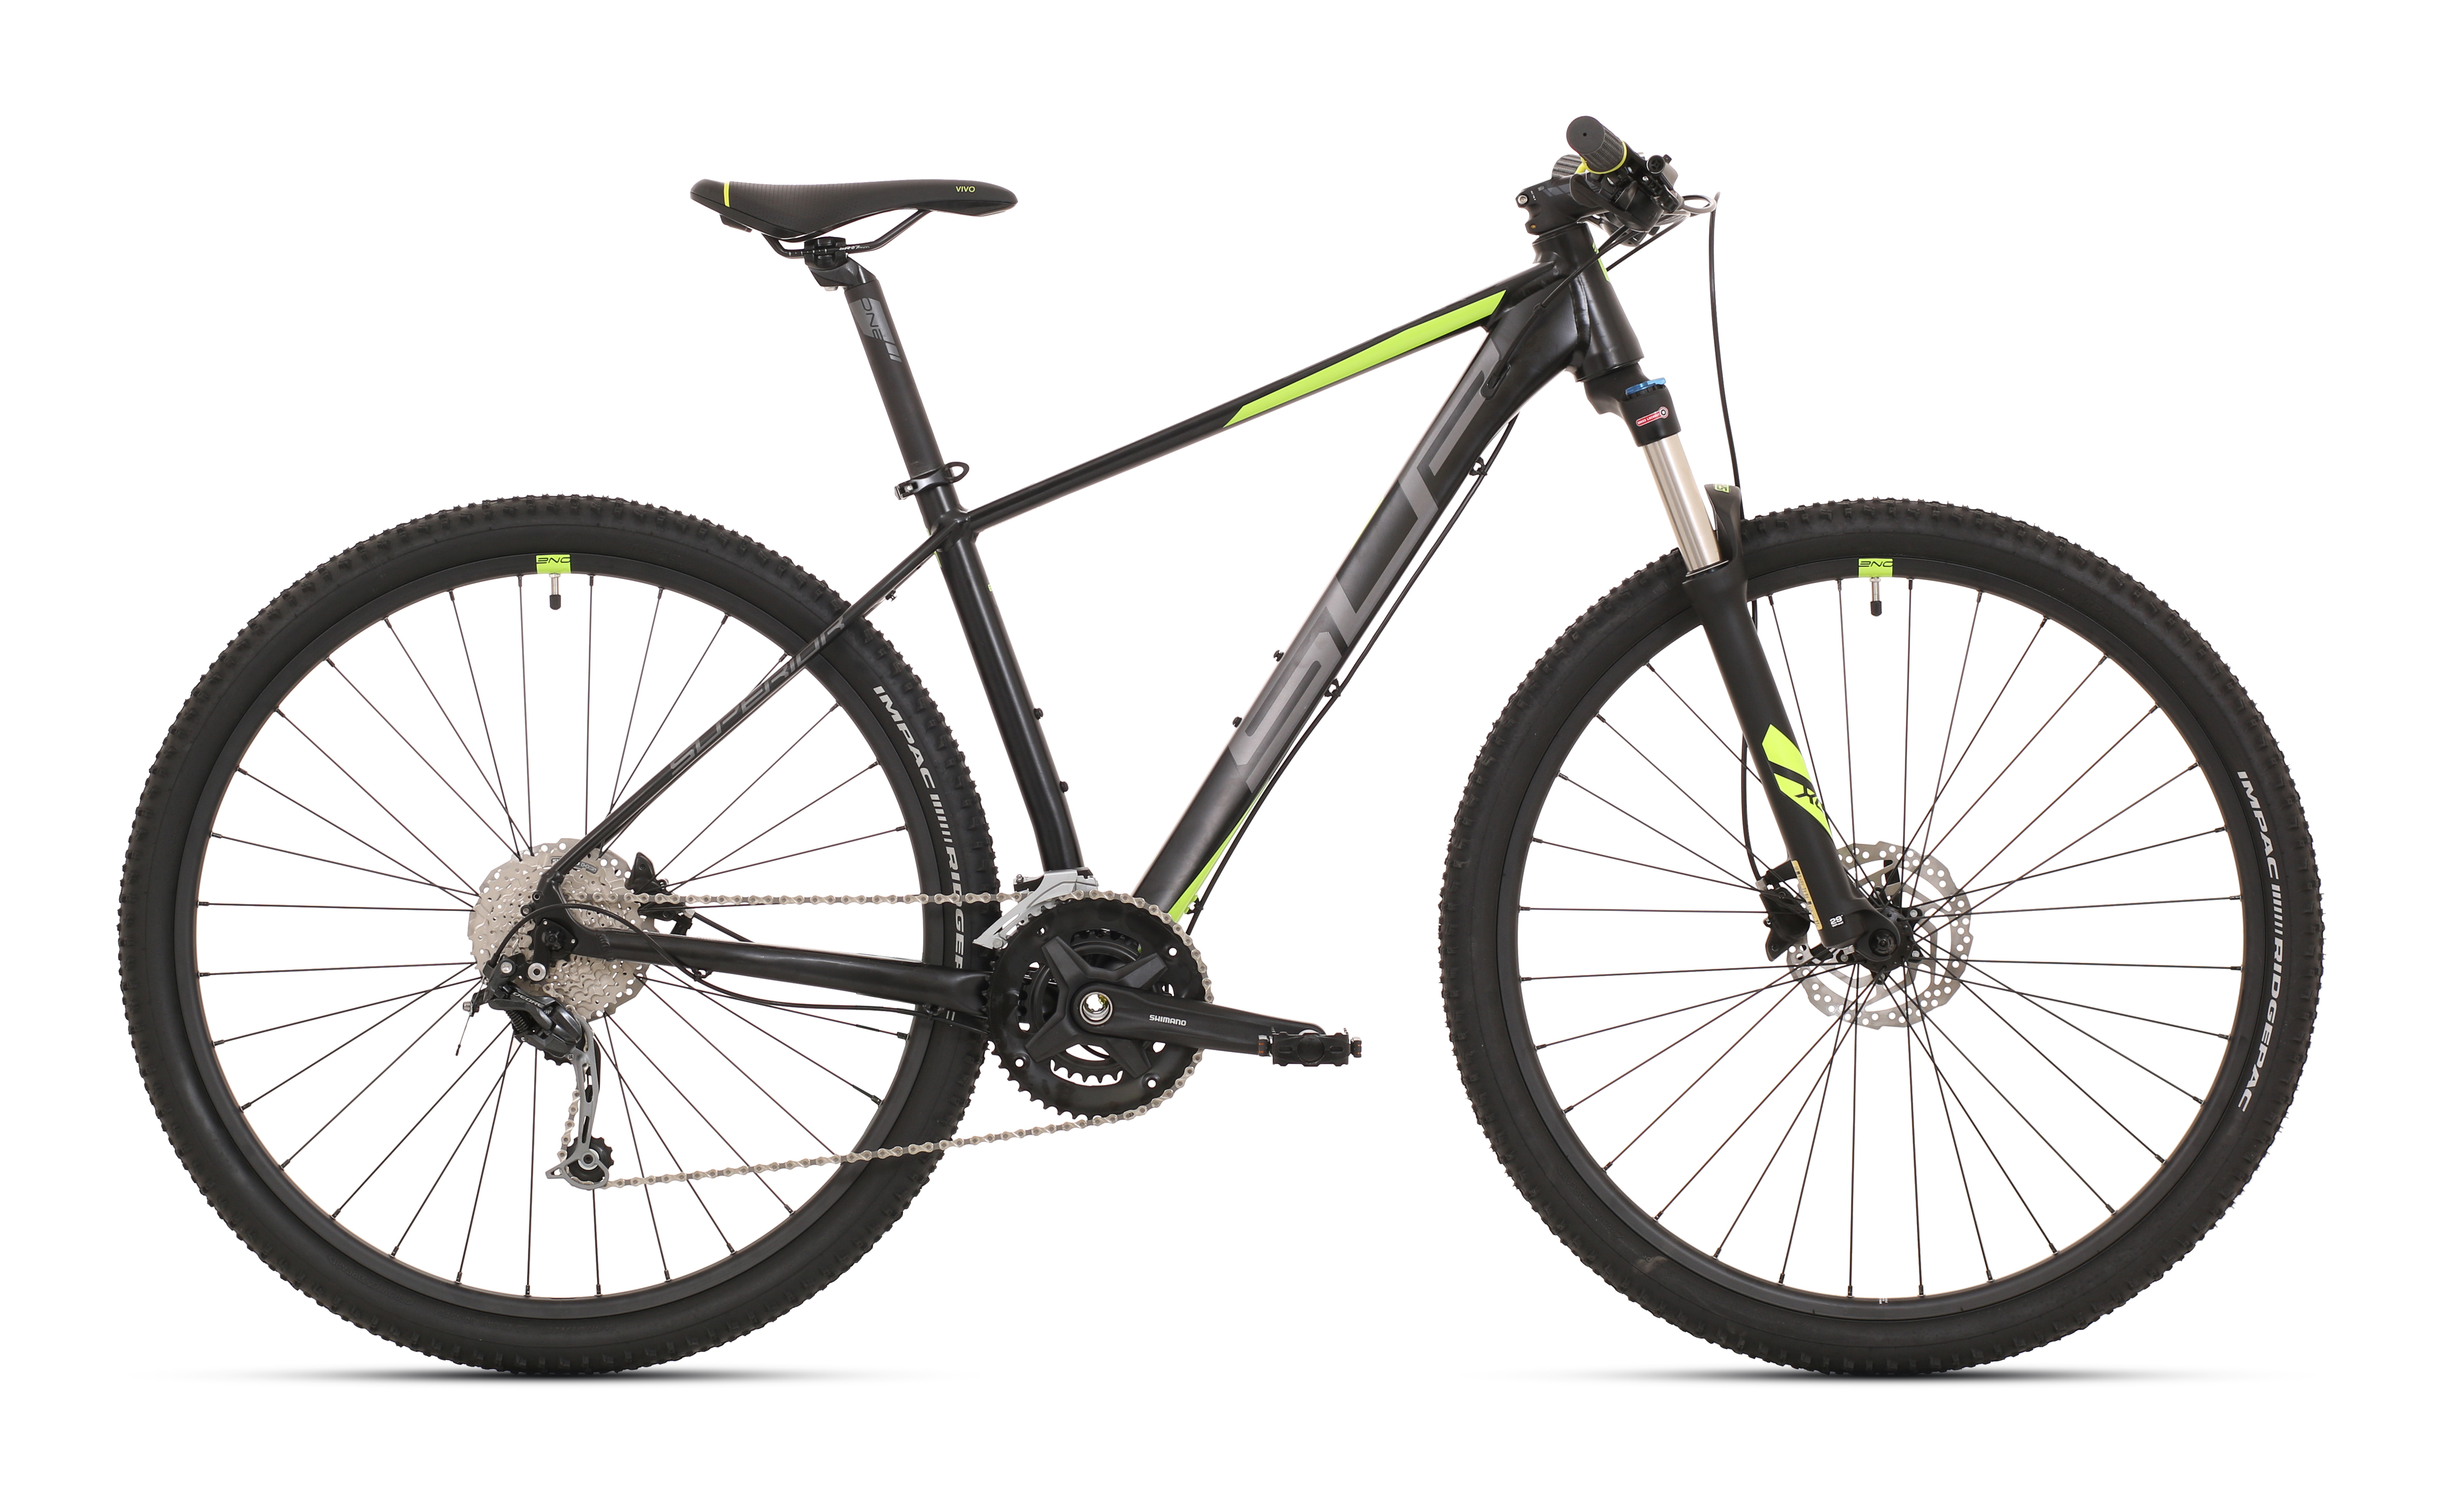 Superior XC 869 Matte Black/Dark Silver/Neon Yellow mod.020